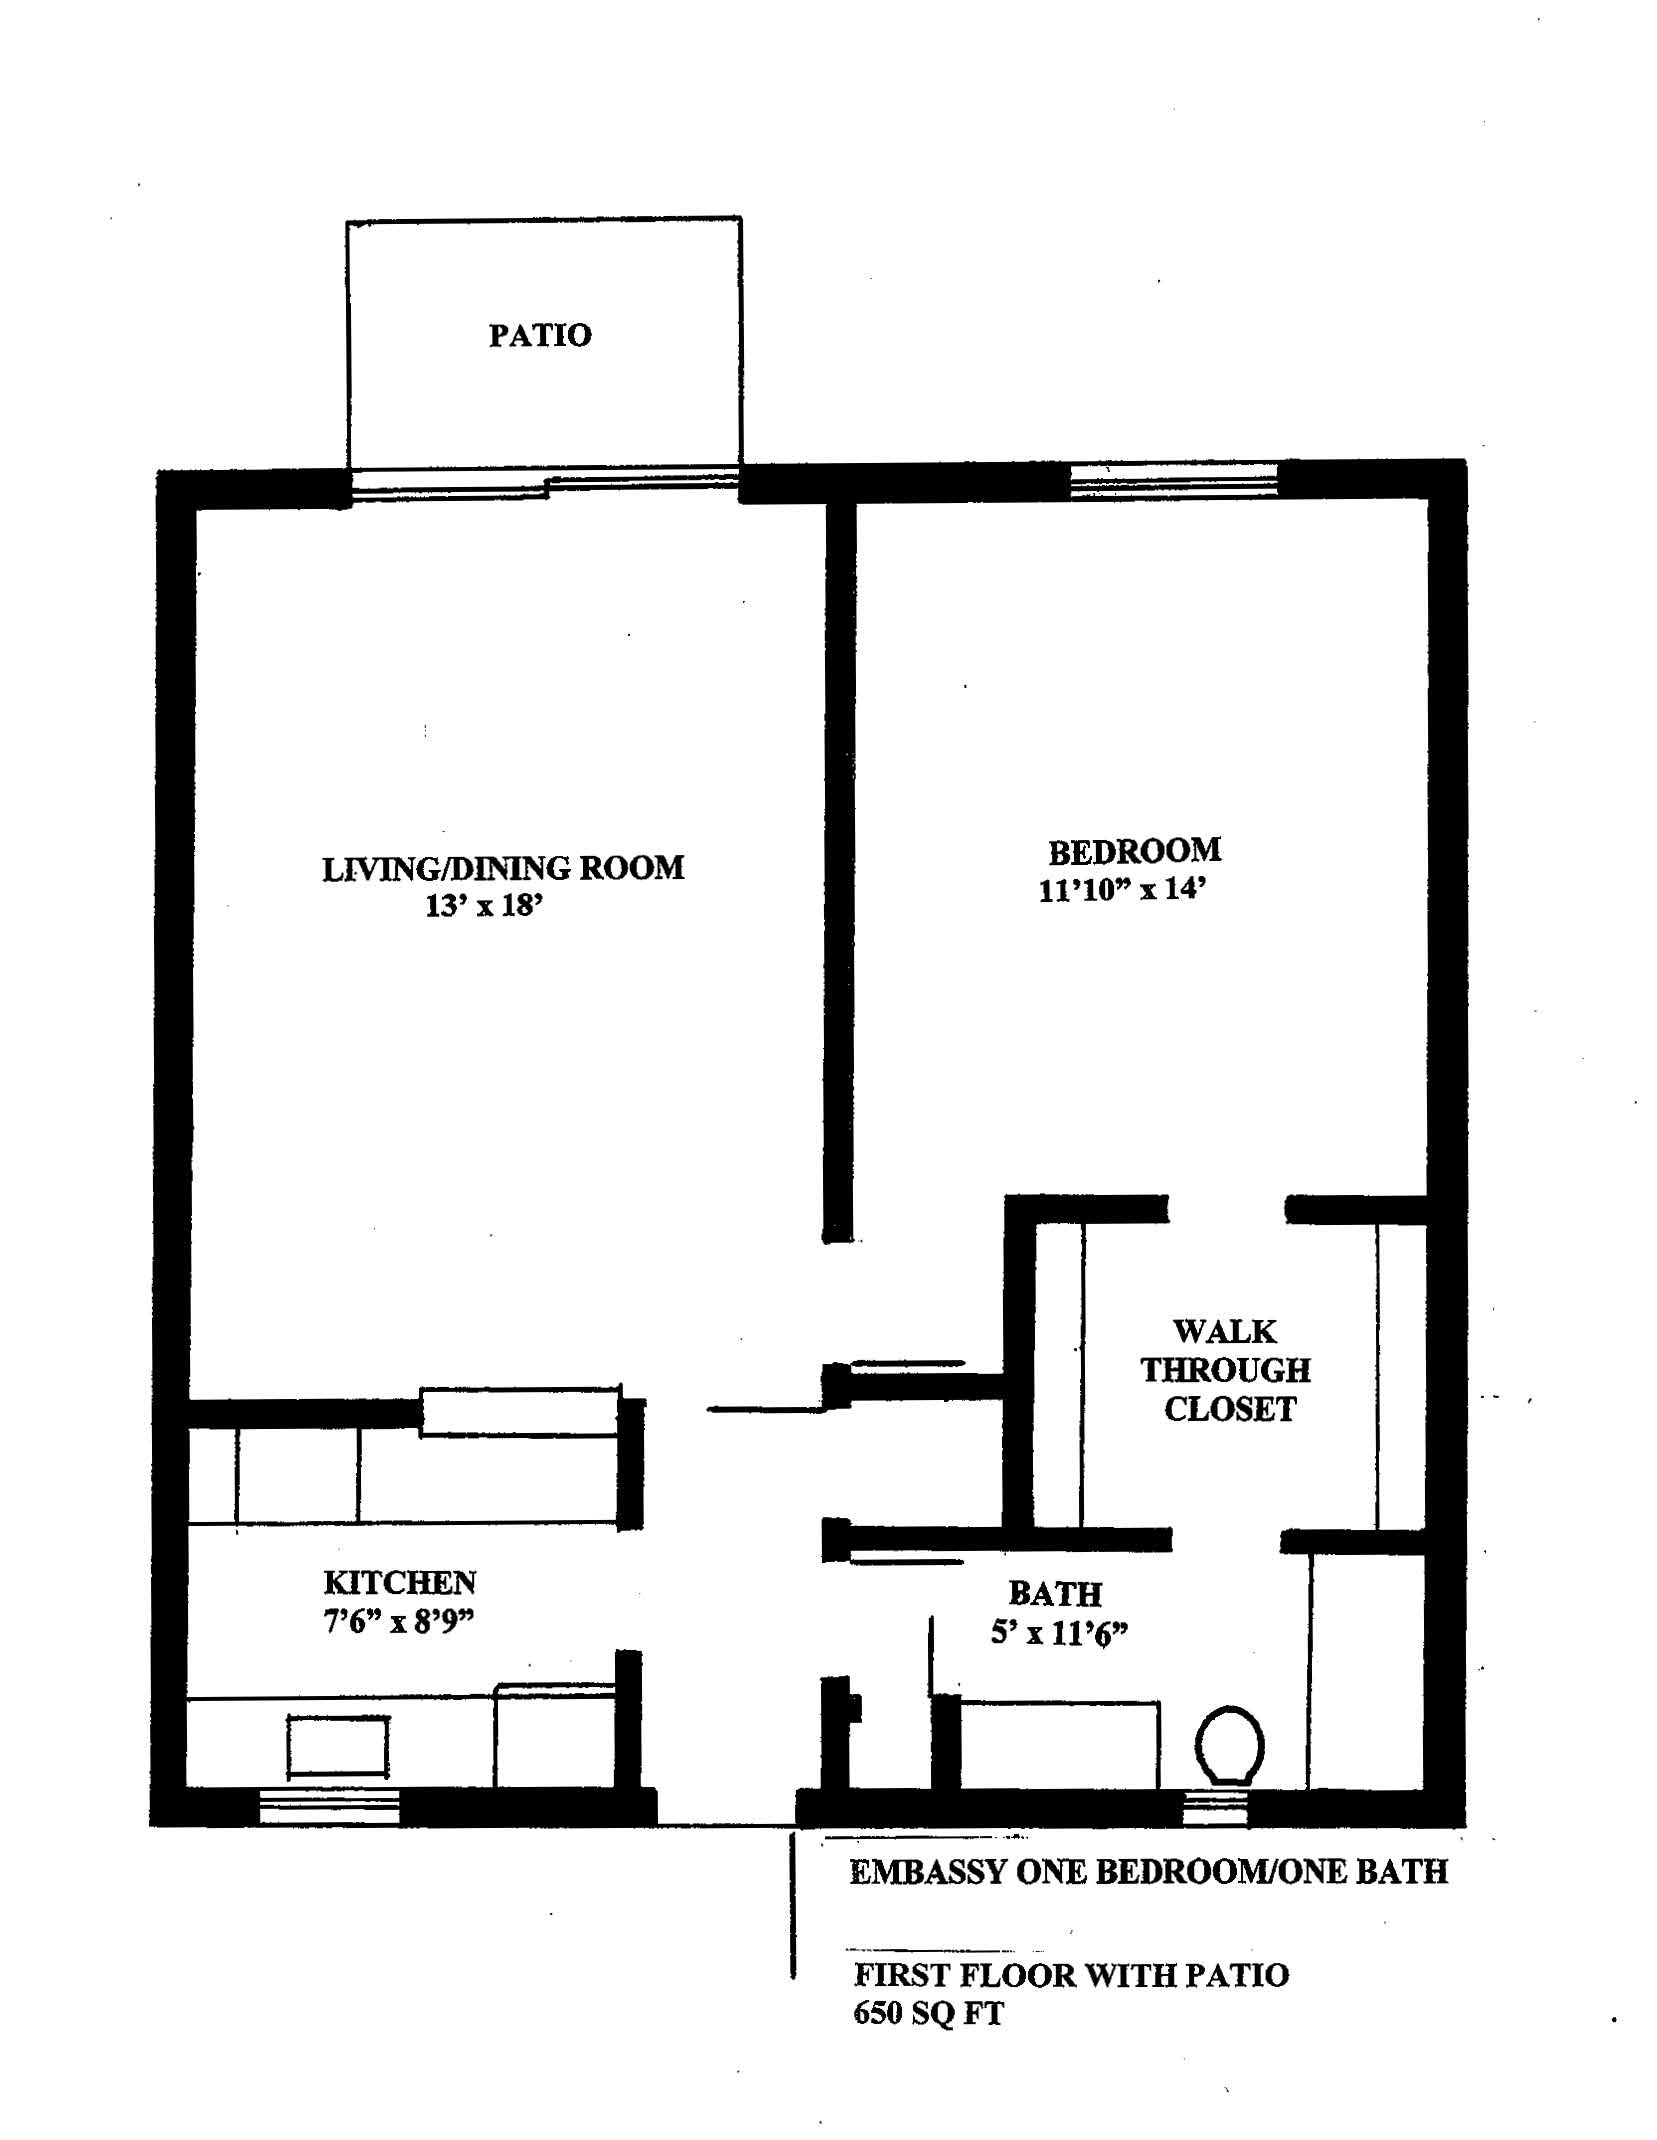 One Bedroom Apartments Tampa Fl Lovely Ideas 1 Bedroom